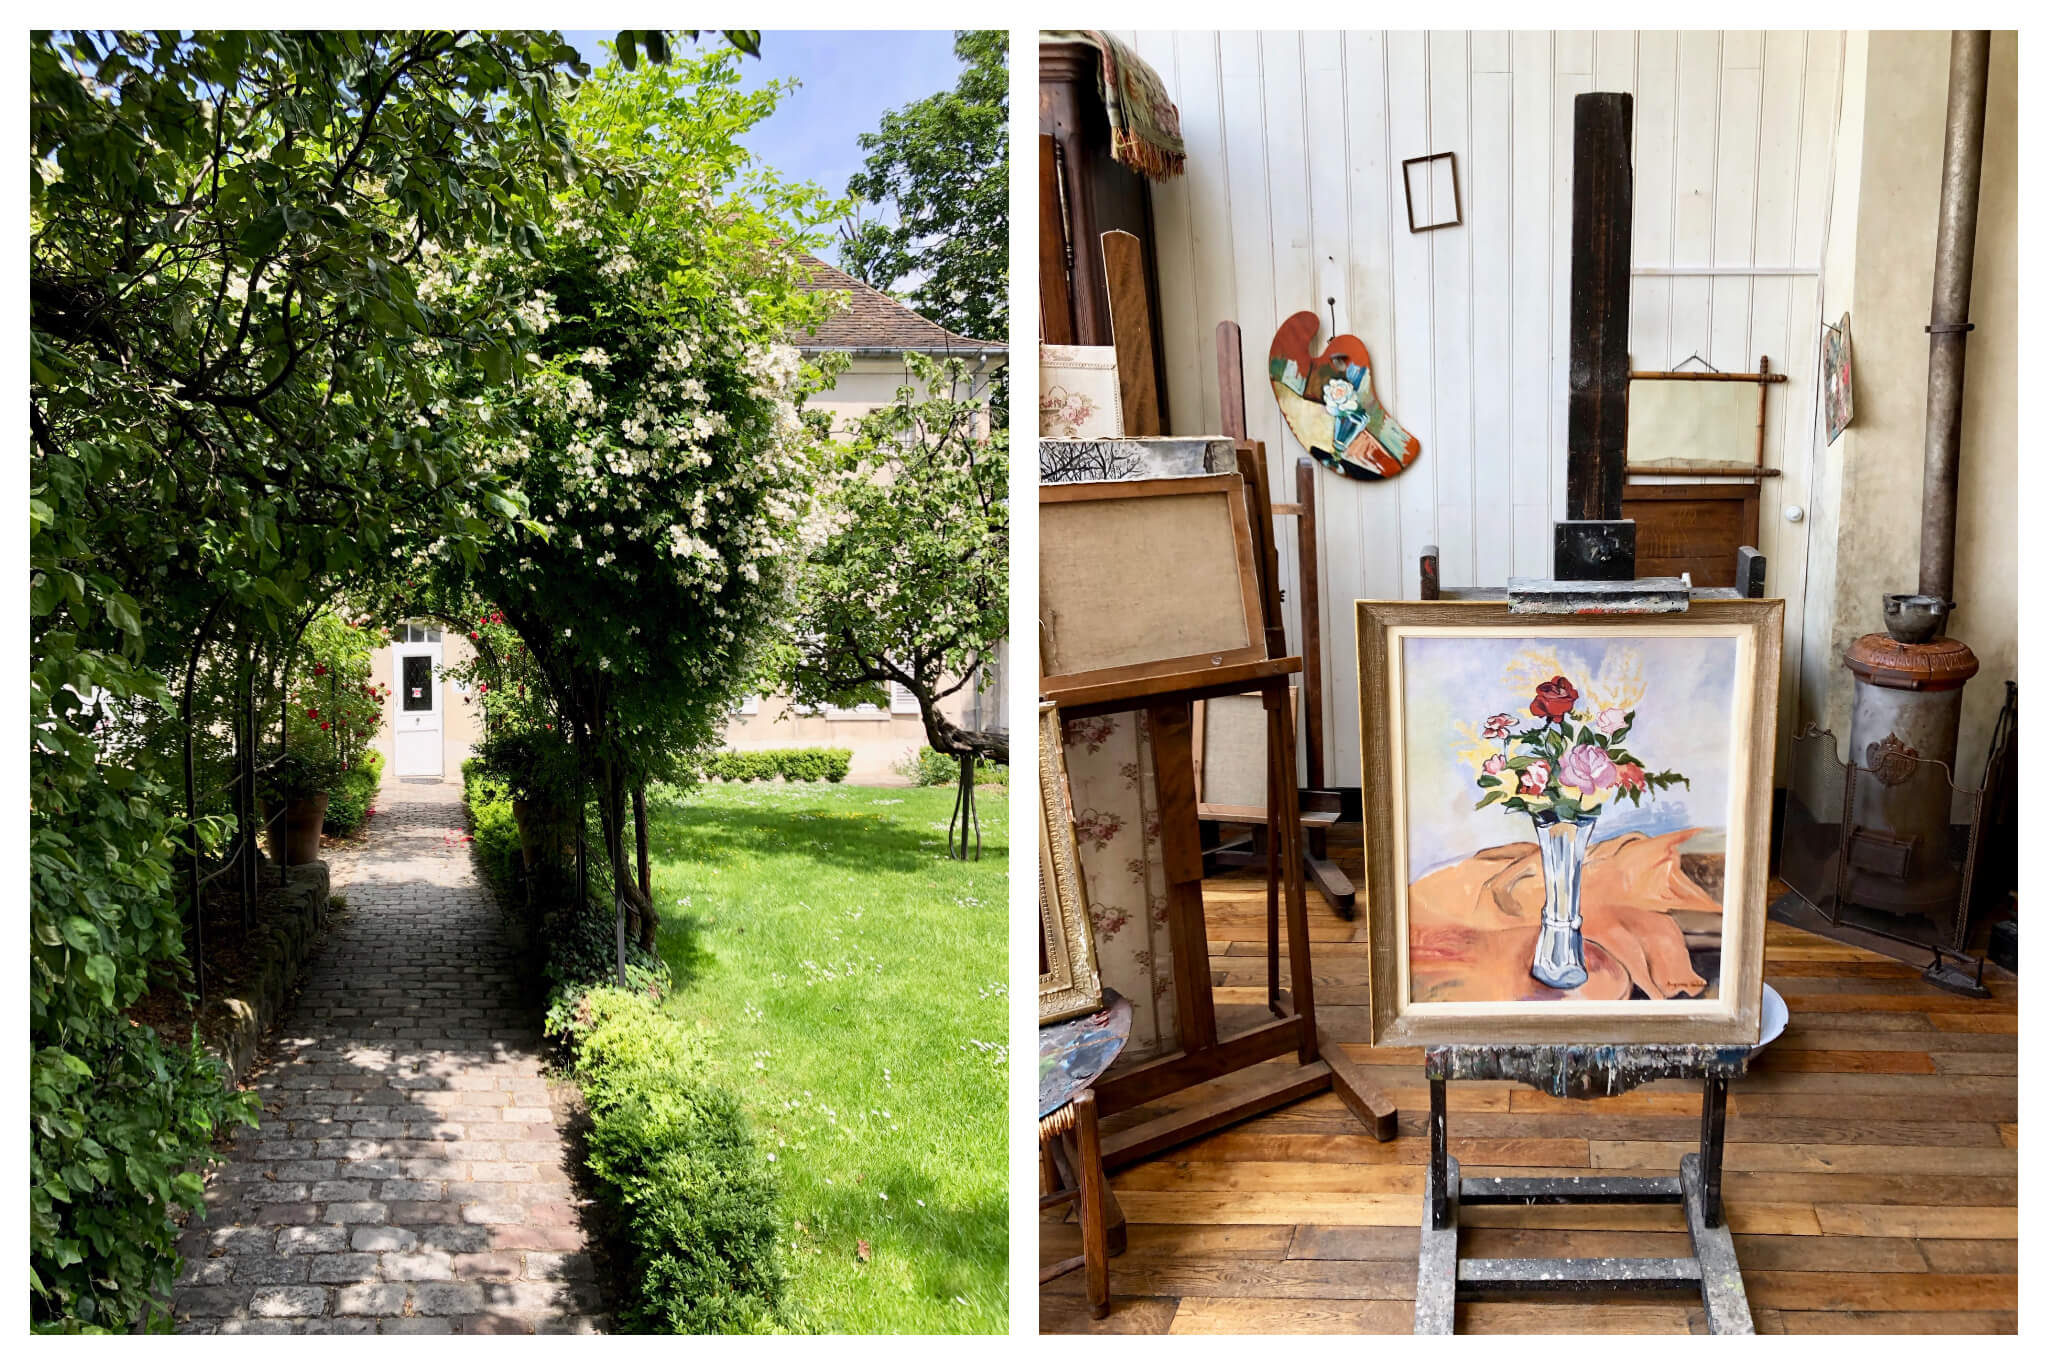 Left, the garden of the Musée Montmartre in Paris, featuring the oldest house in the area. Right, a painting of flowers in a vase inside the atelier of Suzanne Valadon at the museum.